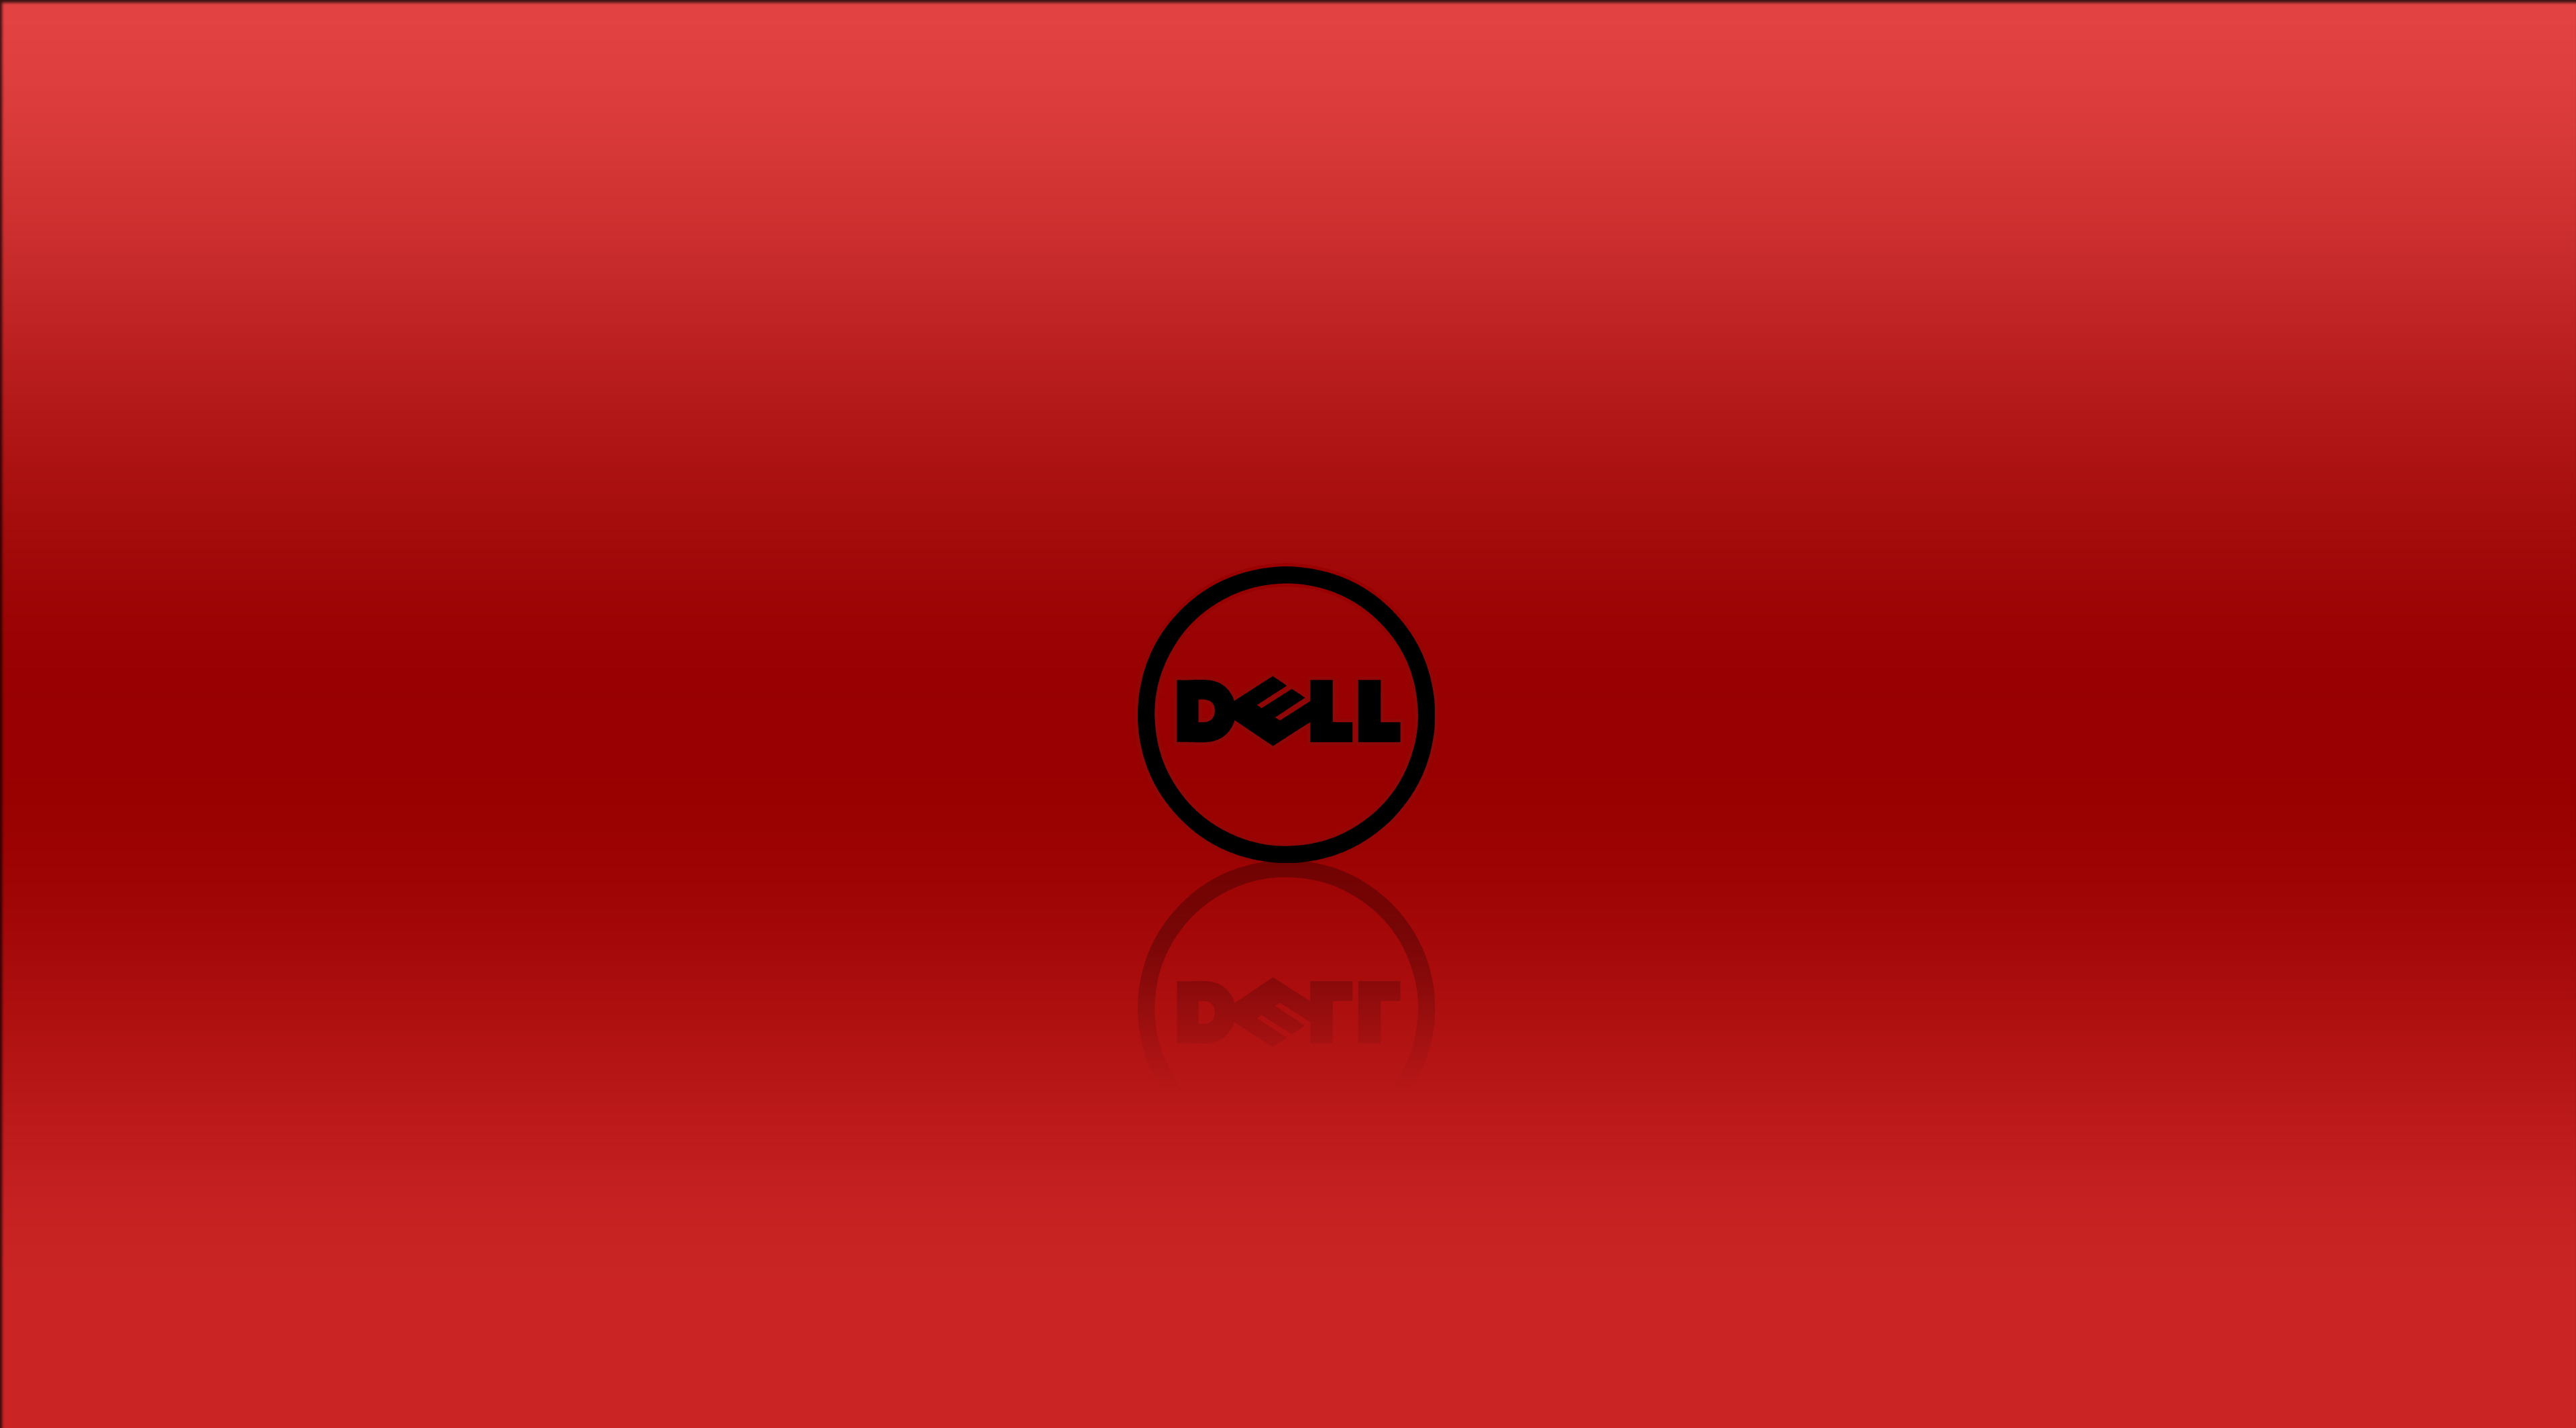 Dell Wallpaper Full HD Fondo de Pantalla and Fondo de ...